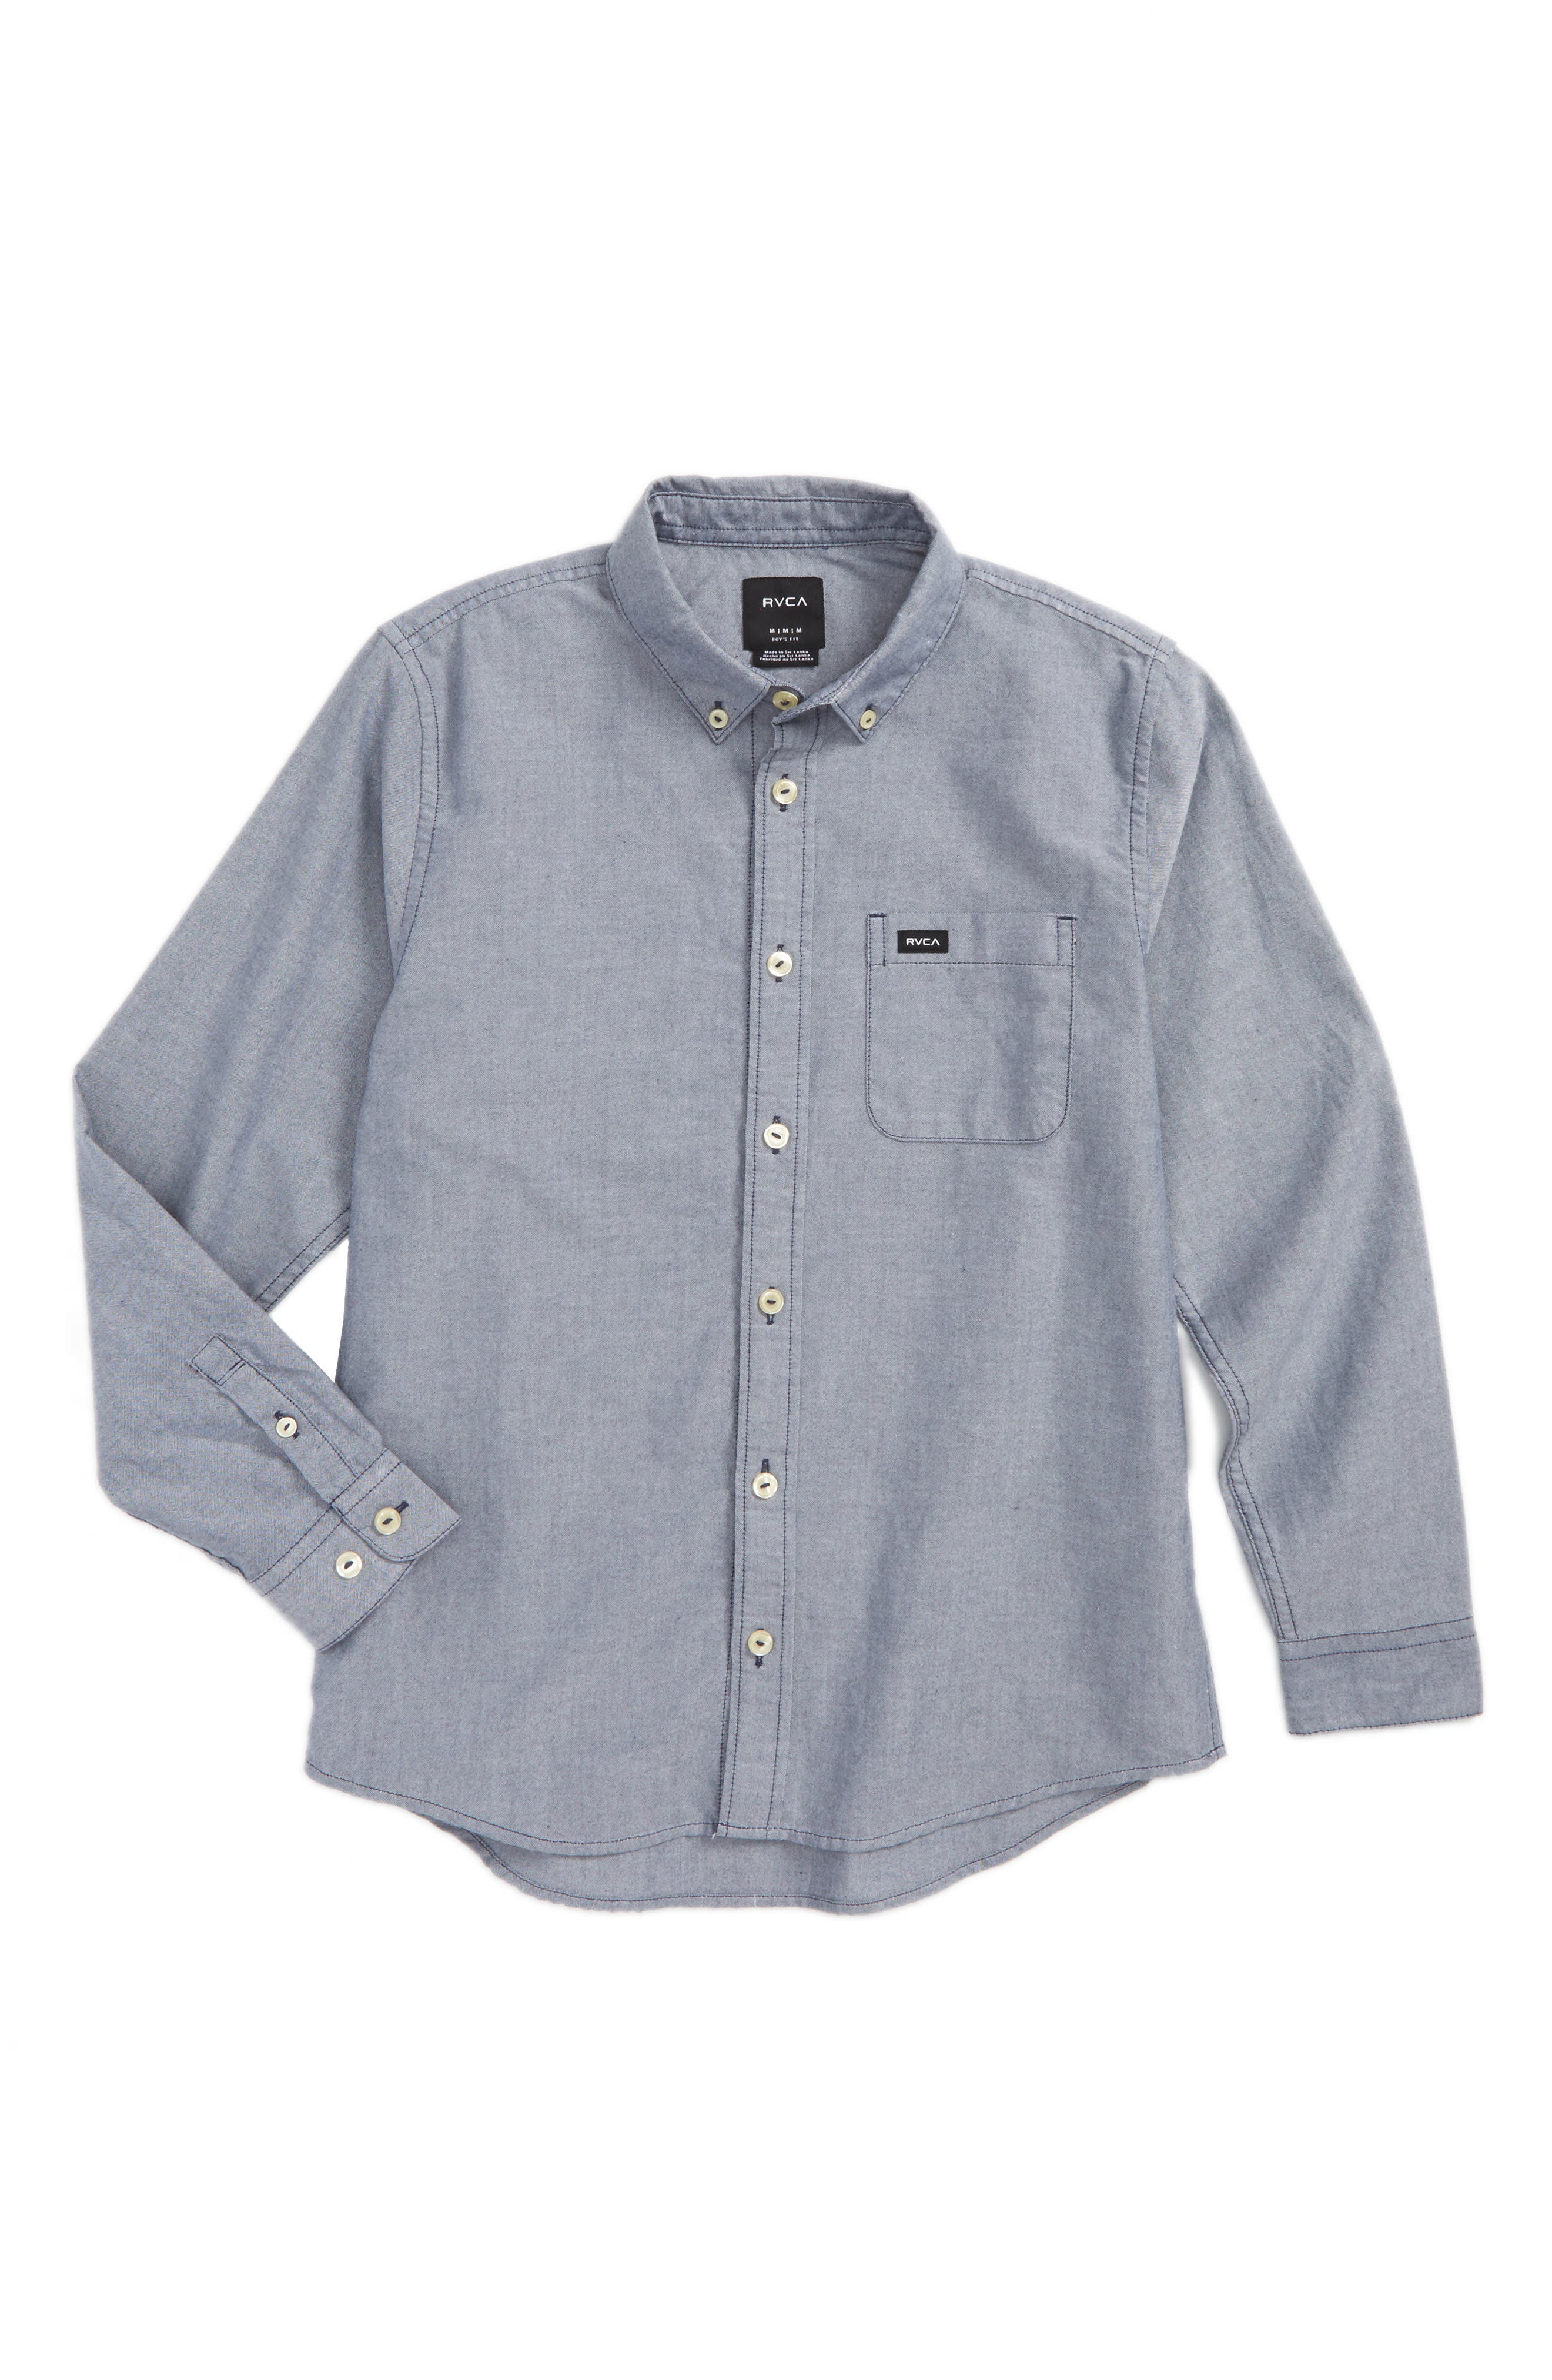 RVCA 'That'll Do' Long Sleeve Oxford Woven Shirt (Big Boys)